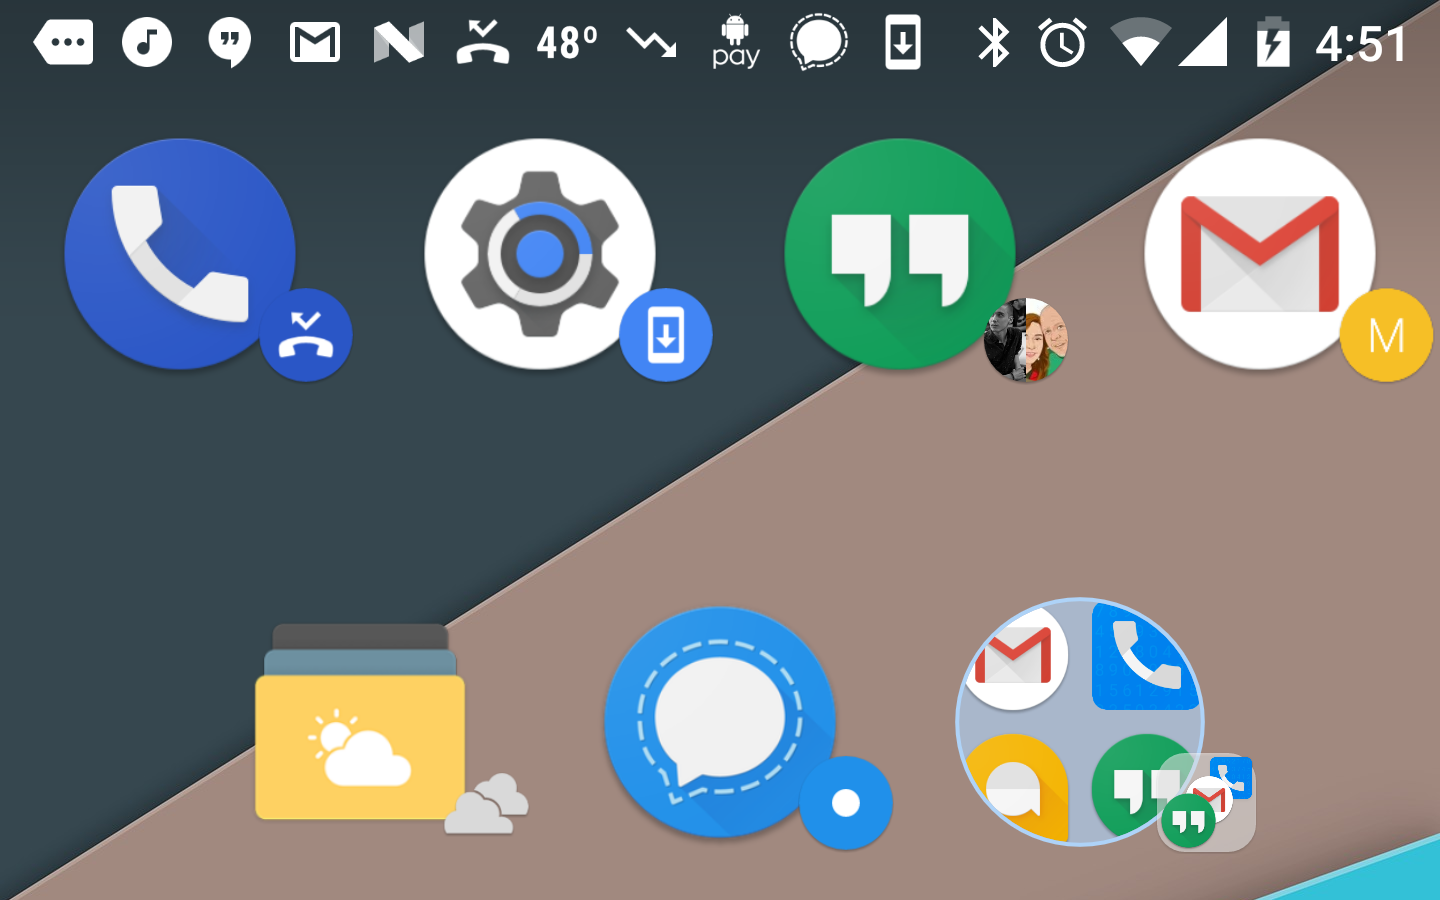 App badges nova launcher